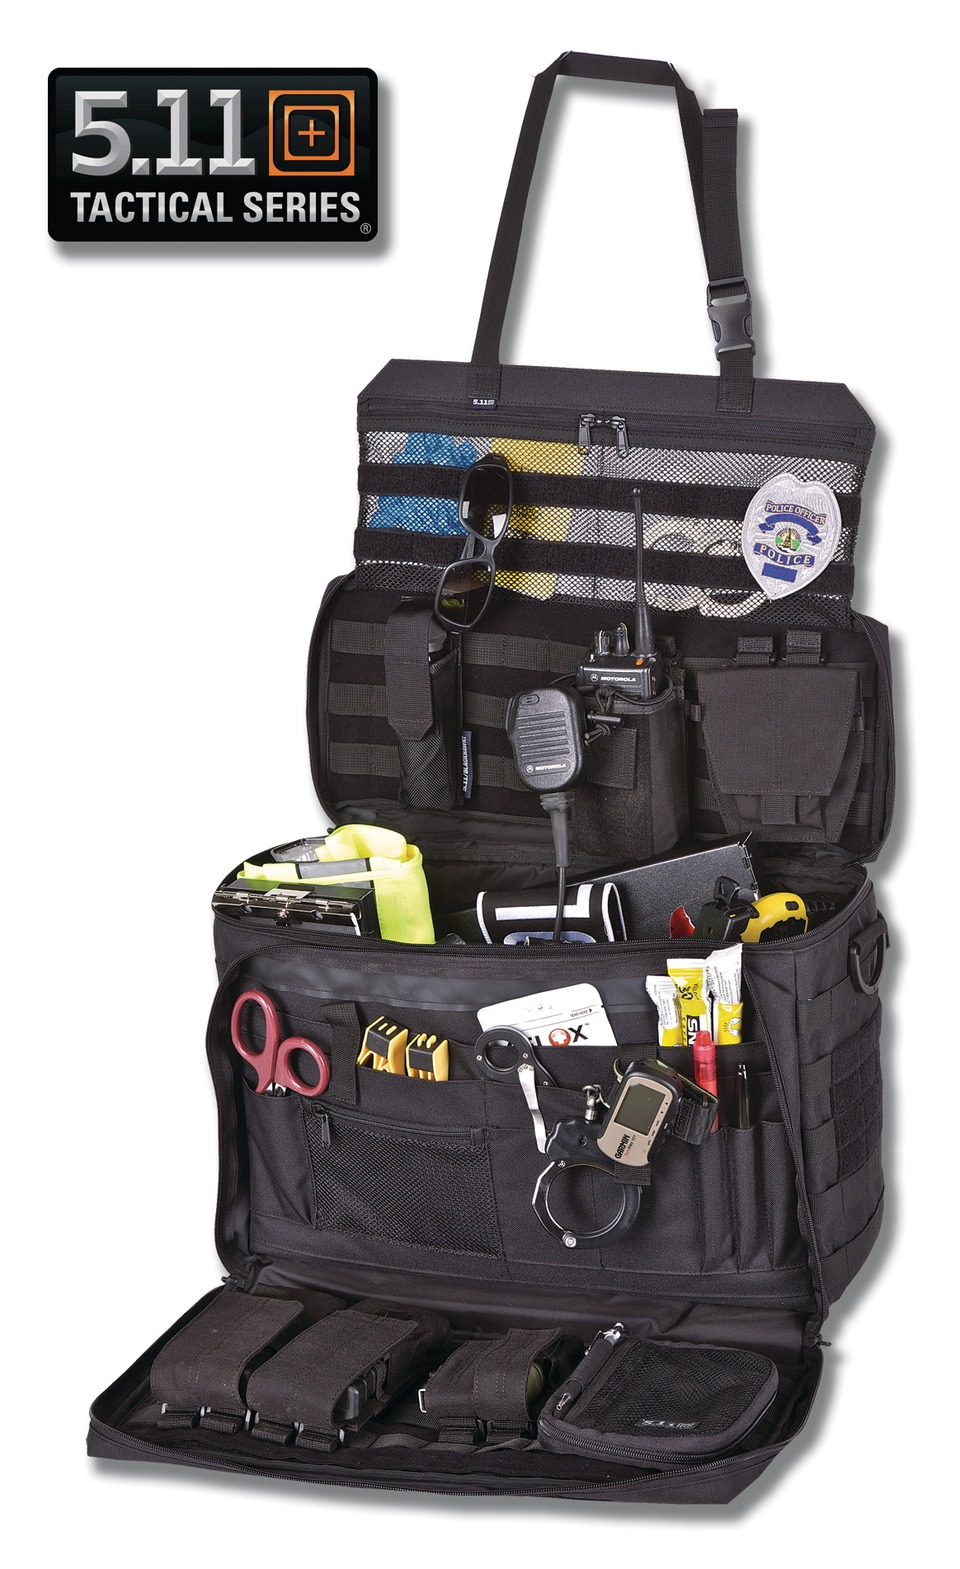 5 11 Tactical Police Gear Law Enforcement Equipment And Supplies Wingman Patrol Bag In Vehicles